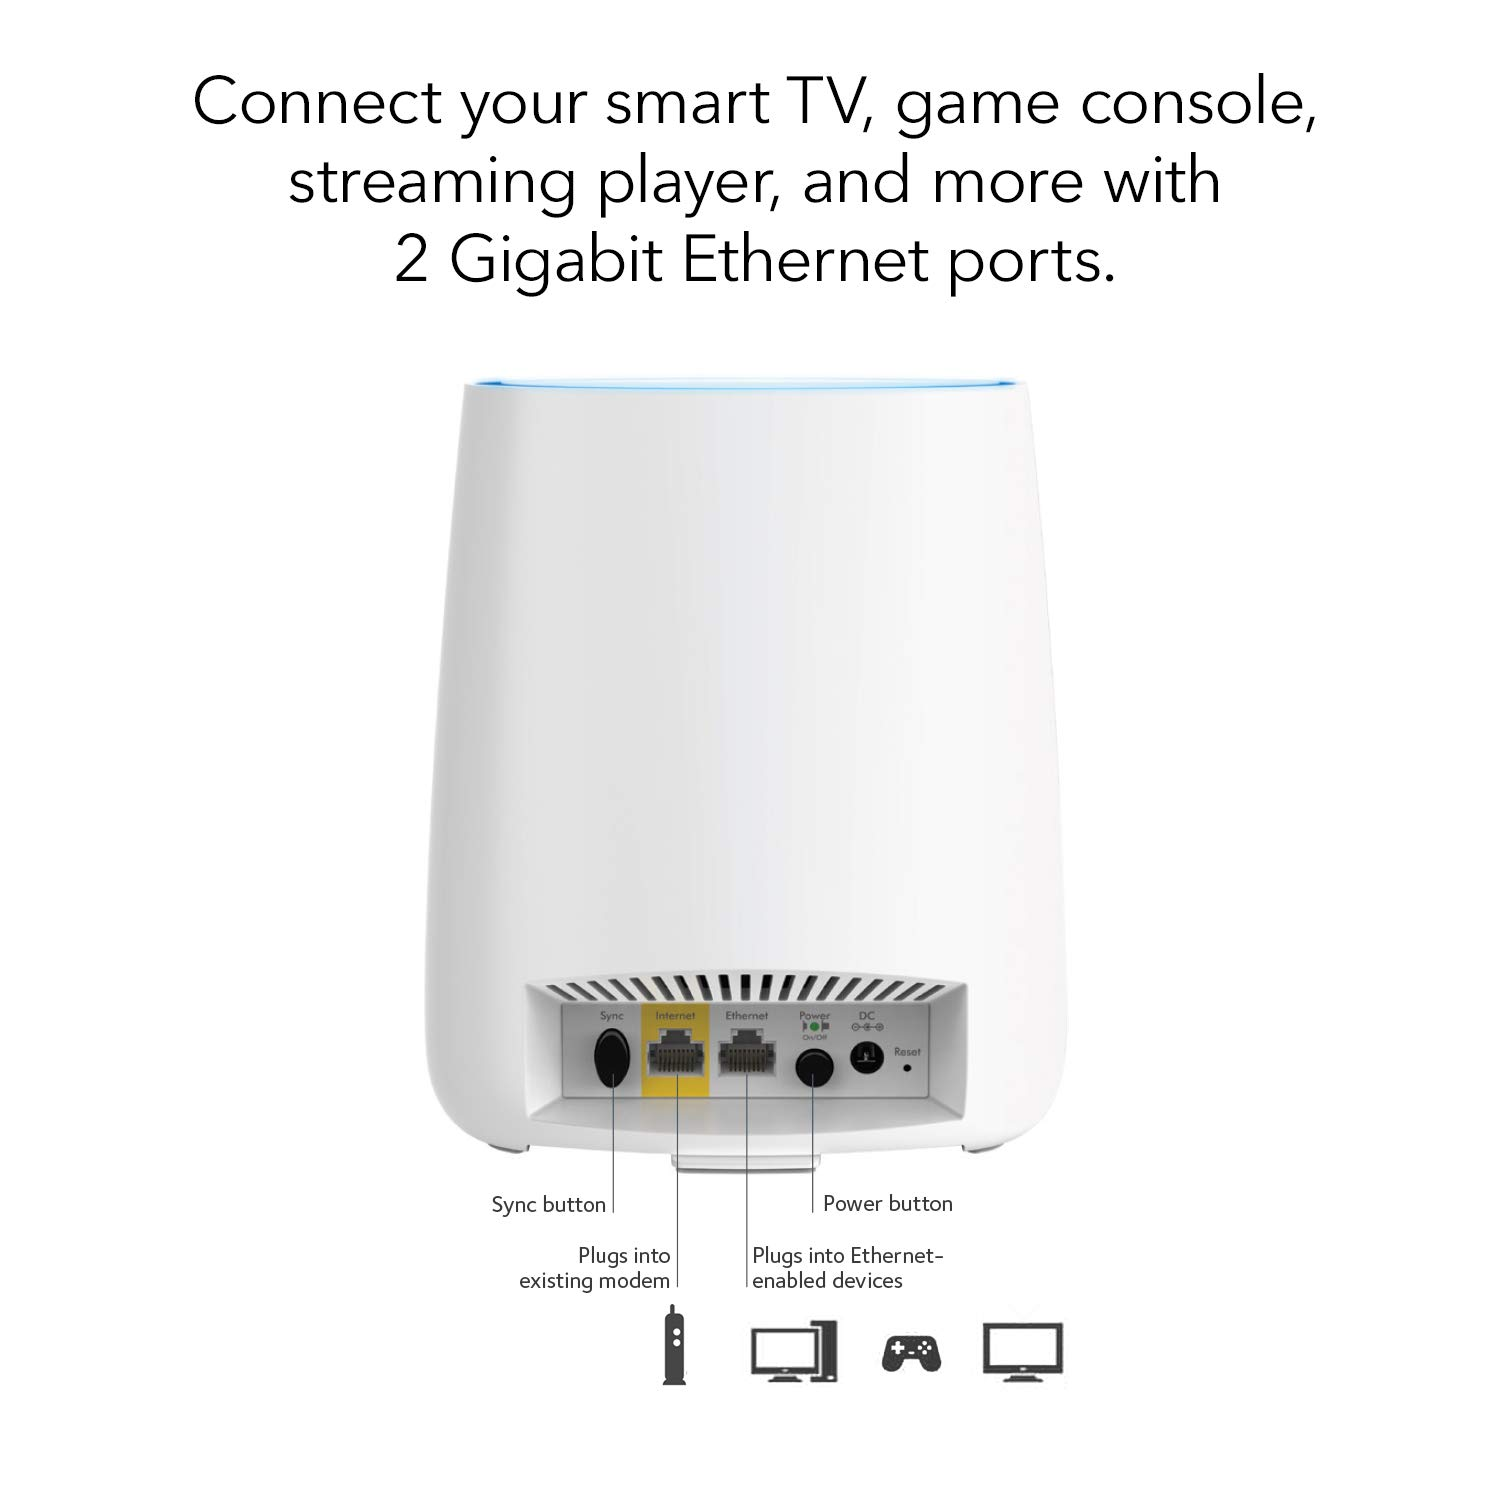 NETGEAR Orbi Whole Home Mesh-Ready WiFi Router - for speeds up to 2.2 Gbps Over 2,000 sq. feet, AC2200 (RBR20) by NETGEAR (Image #2)